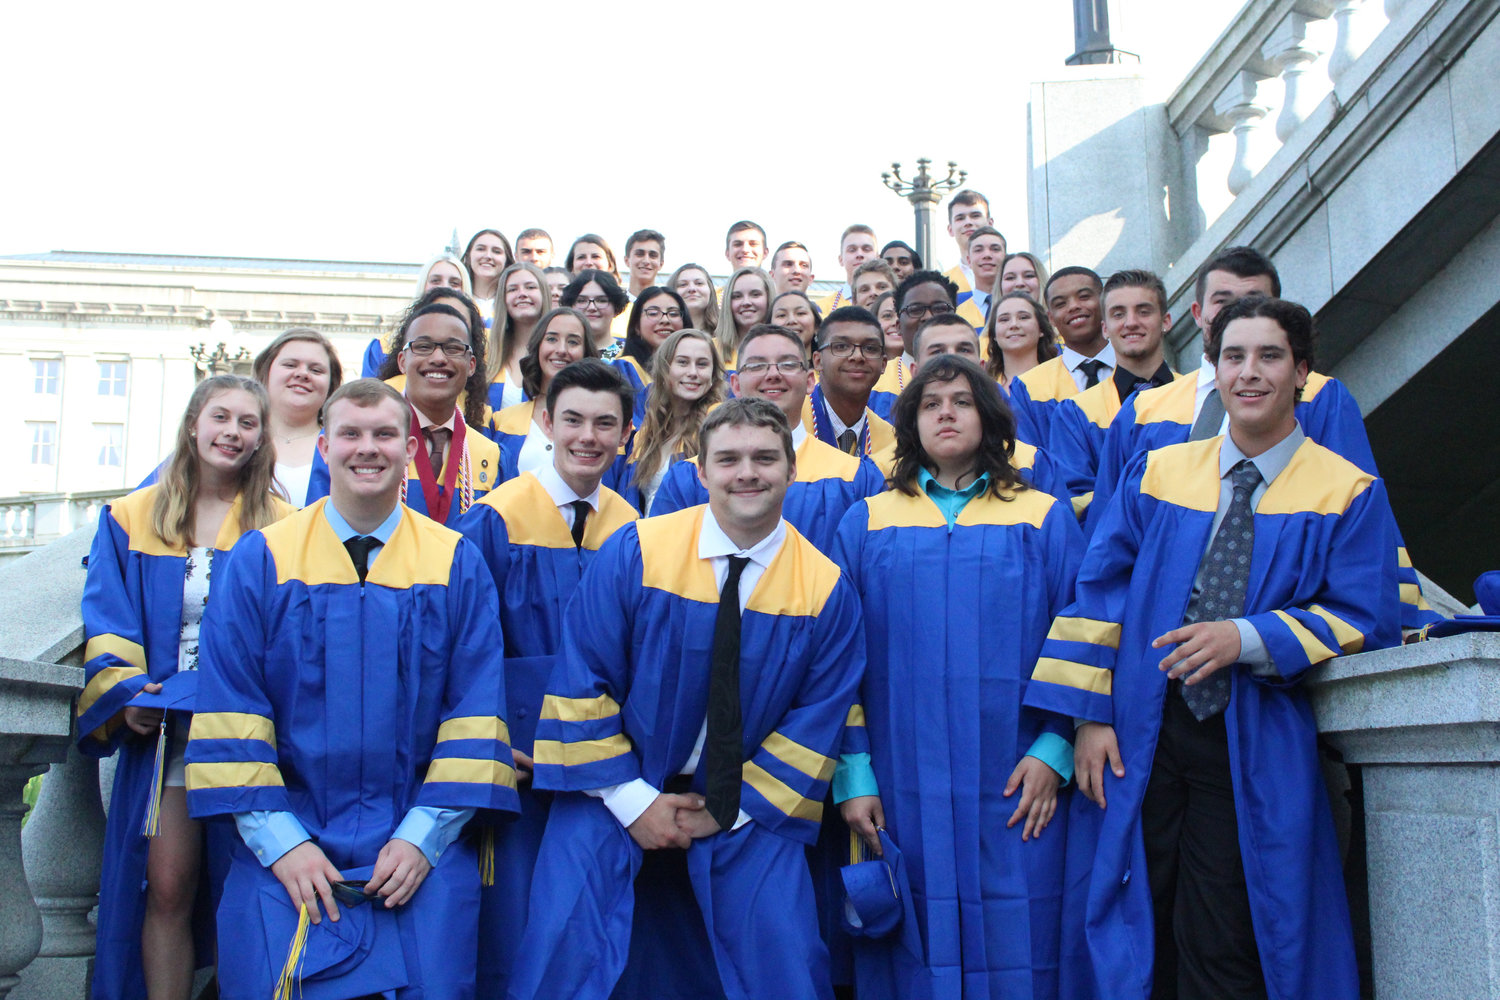 MAHS seniors gathered for pictures before graduation on June 4.